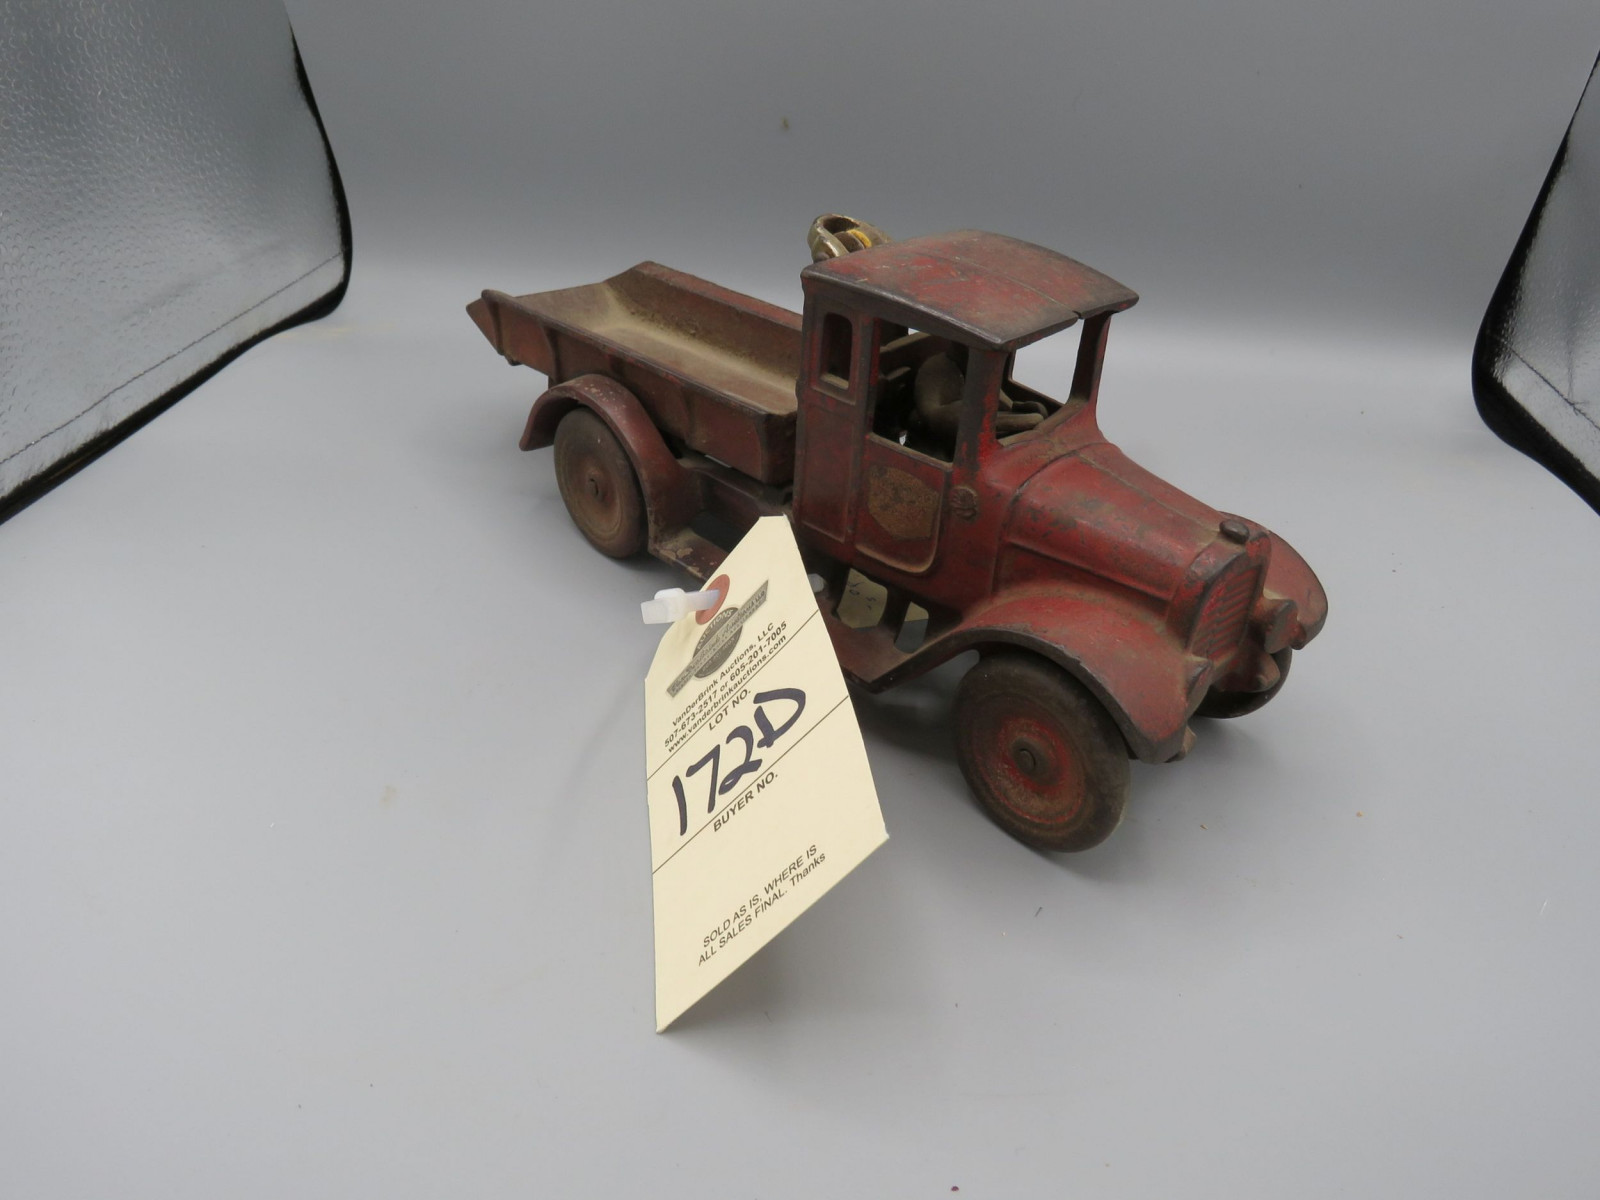 Arcade Cast Iron IH Truck with Man @1922-1930 Approx. 10 inches - Image 1